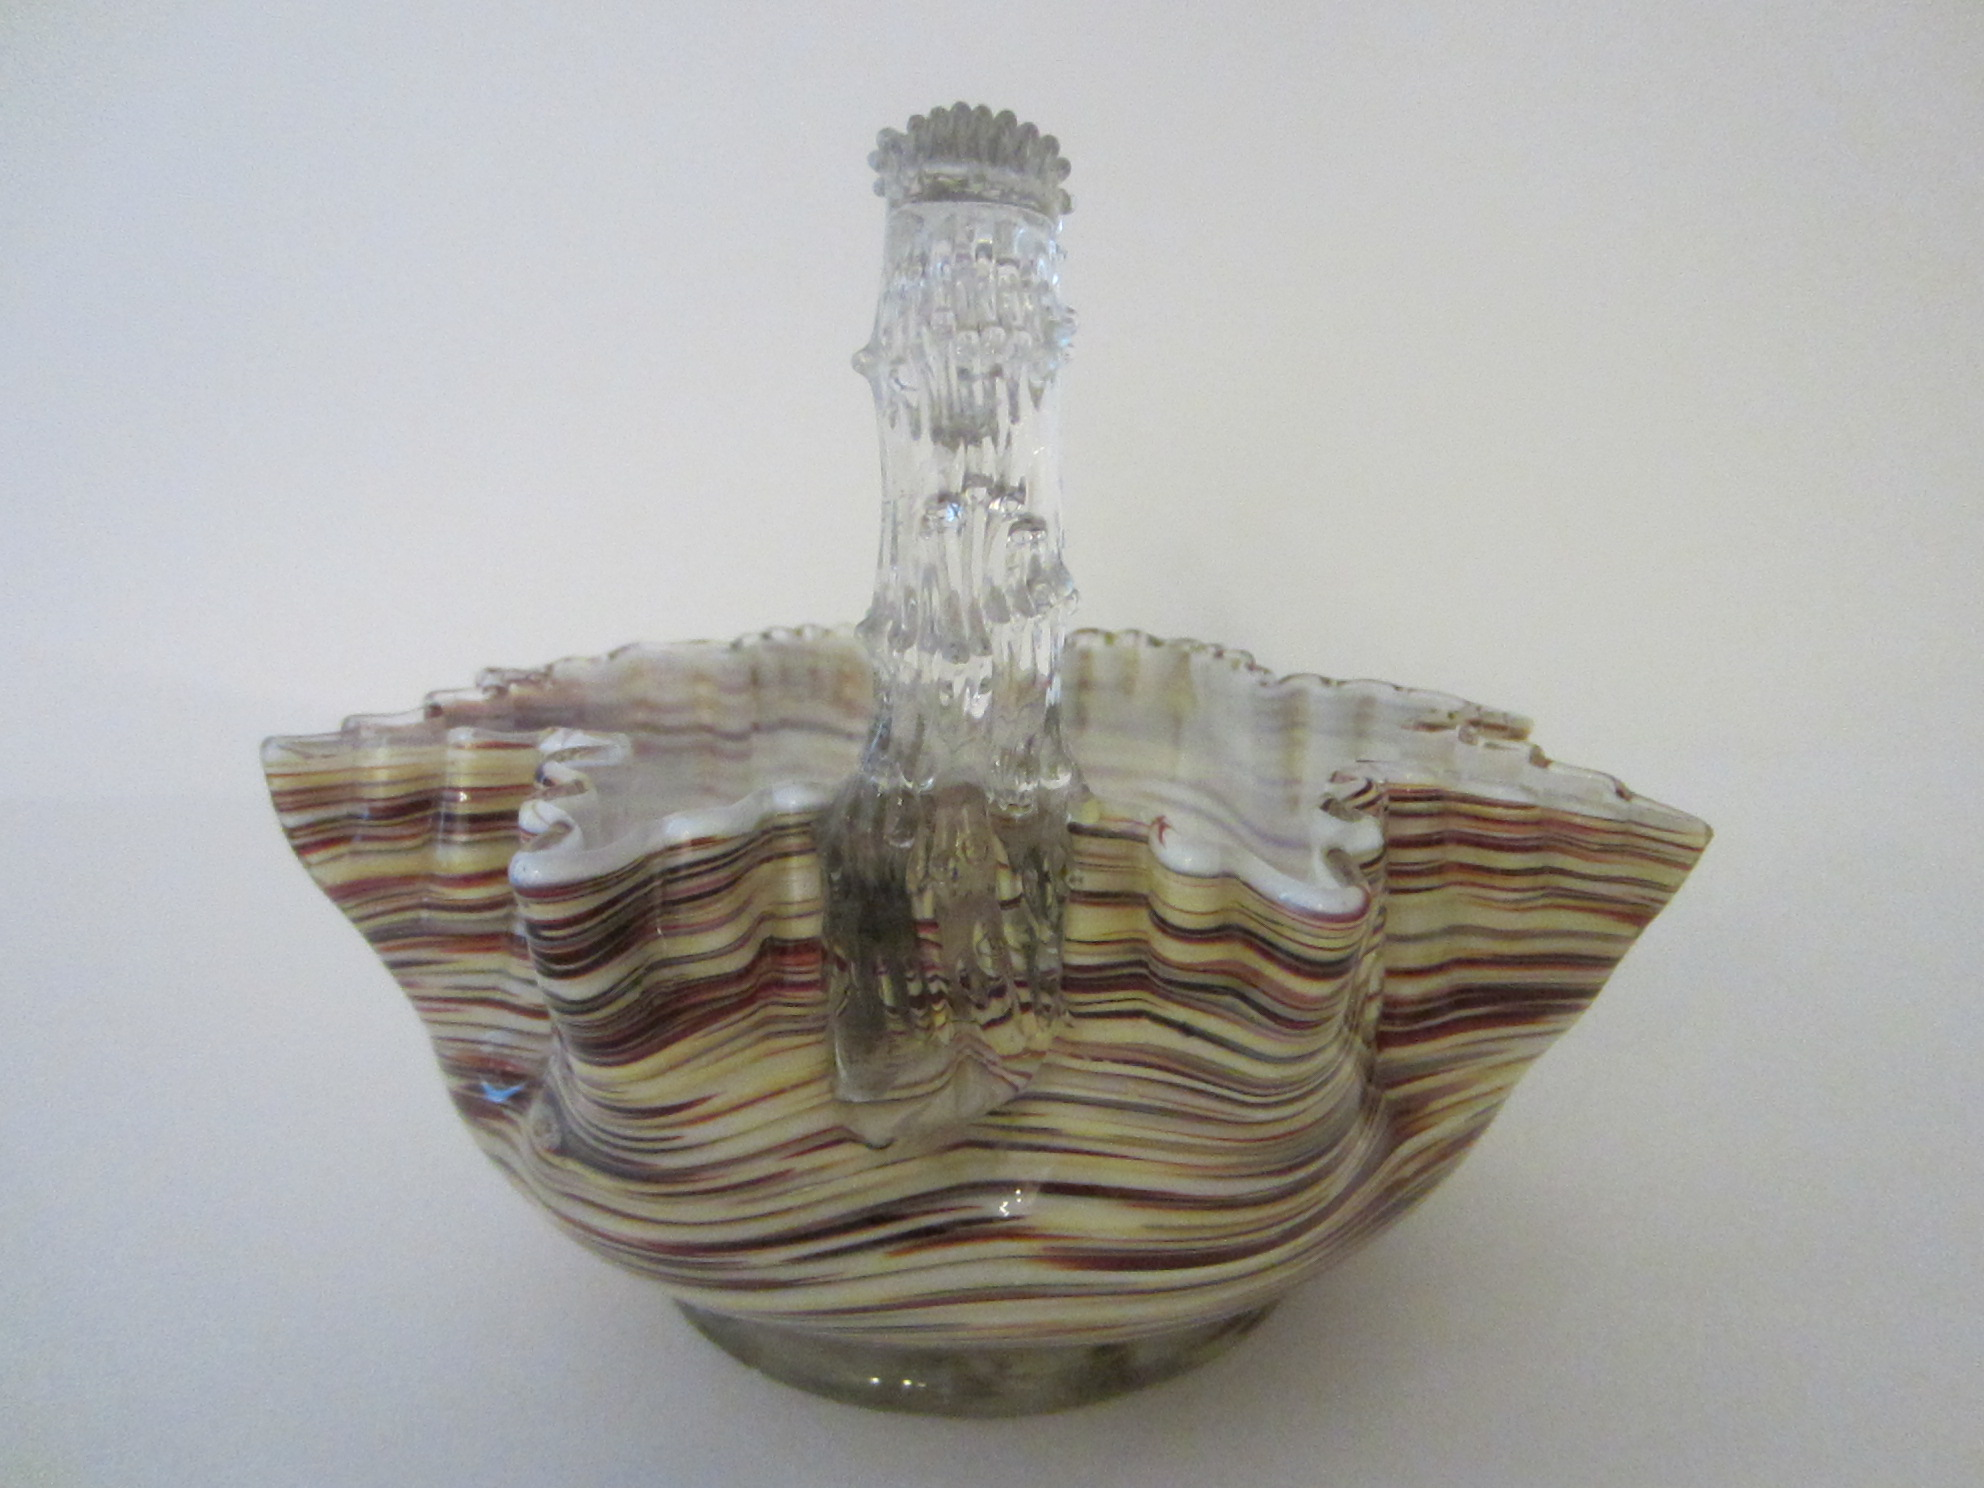 Art Baskets For Sale : Art glass basket applied thorn style handle white interior